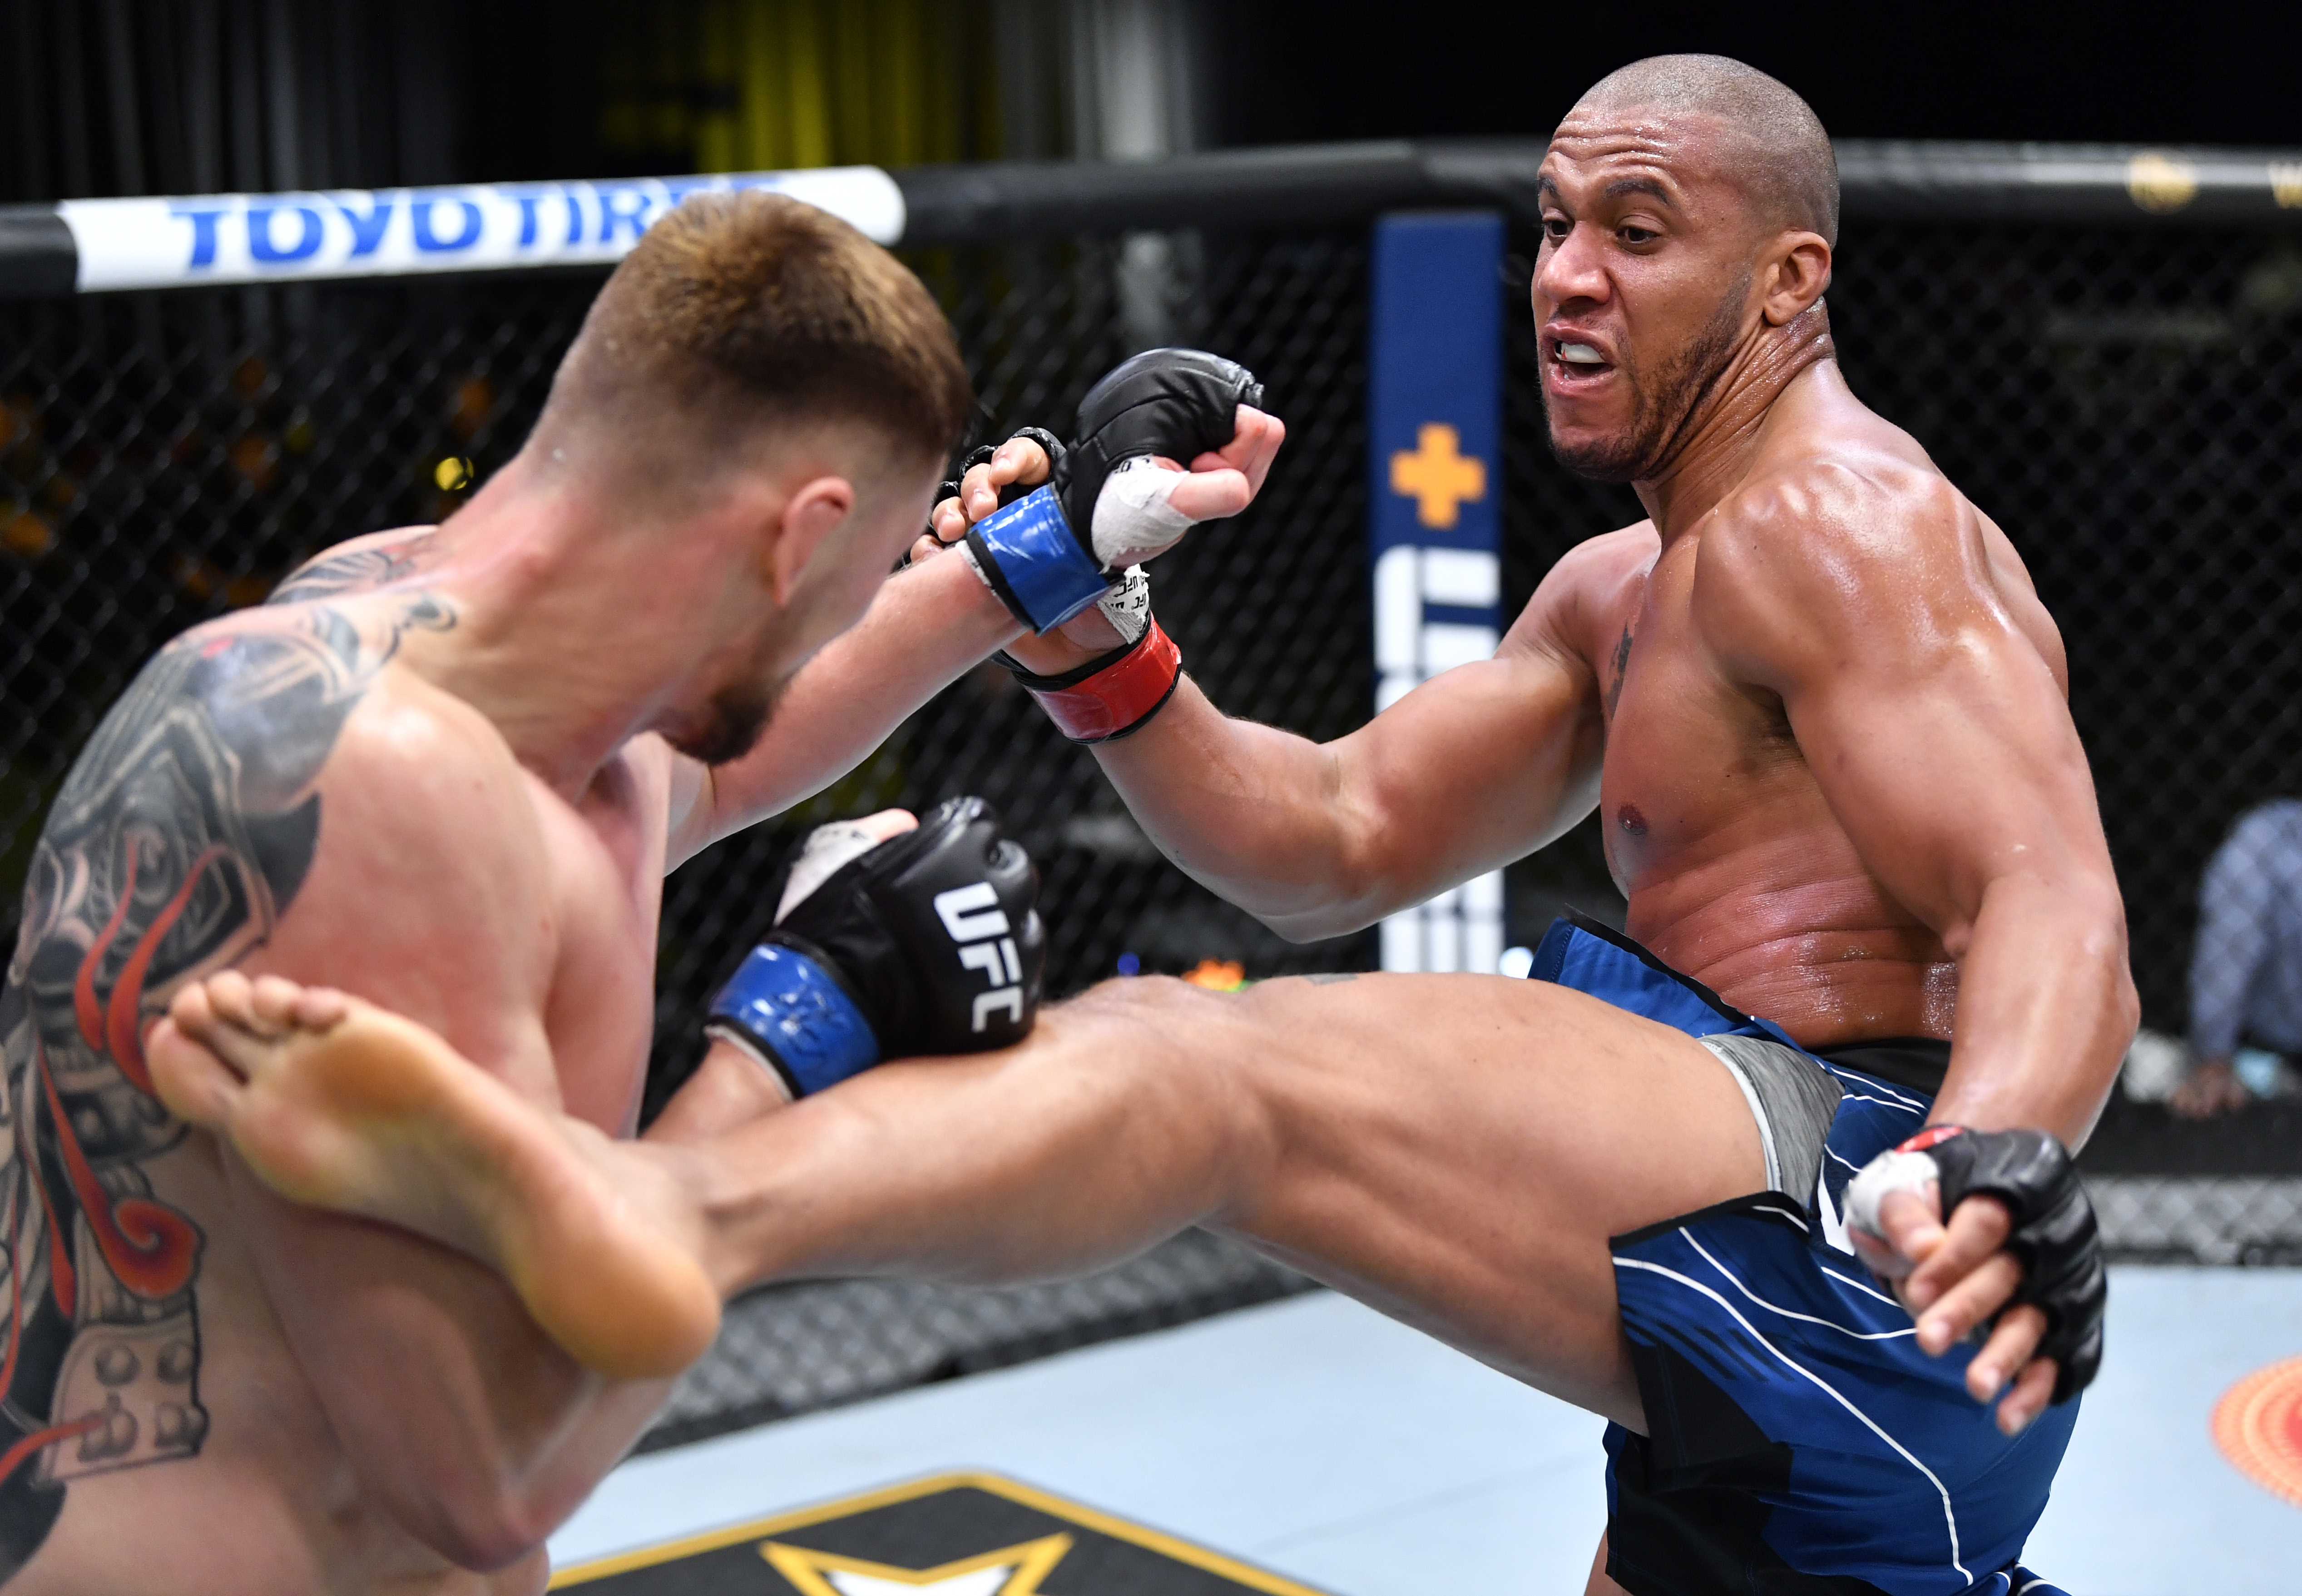 In this handout photo provided by UFC, (R-L) Ciryl Gane of France kicks Alexander Volkov of Russia in a heavyweight fight during the UFC Fight Night event at UFC APEX on June 26, 2021 in Las Vegas, Nevada.